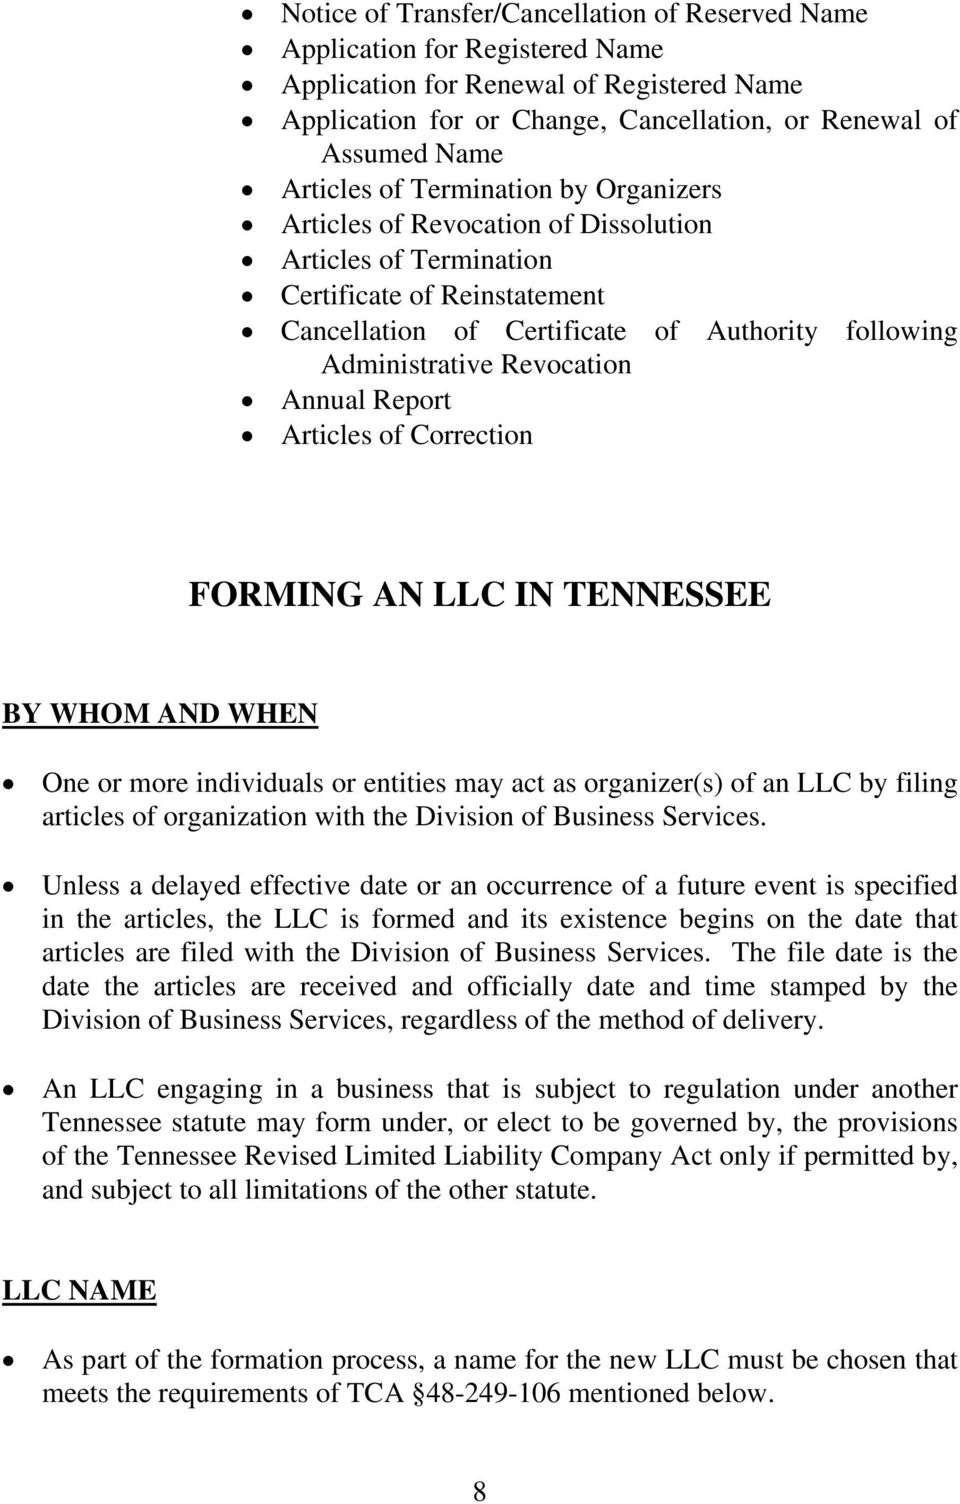 Revocation Annual Report Articles of Correction FORMING AN LLC IN TENNESSEE BY WHOM AND WHEN One or more individuals or entities may act as organizer(s) of an LLC by filing articles of organization